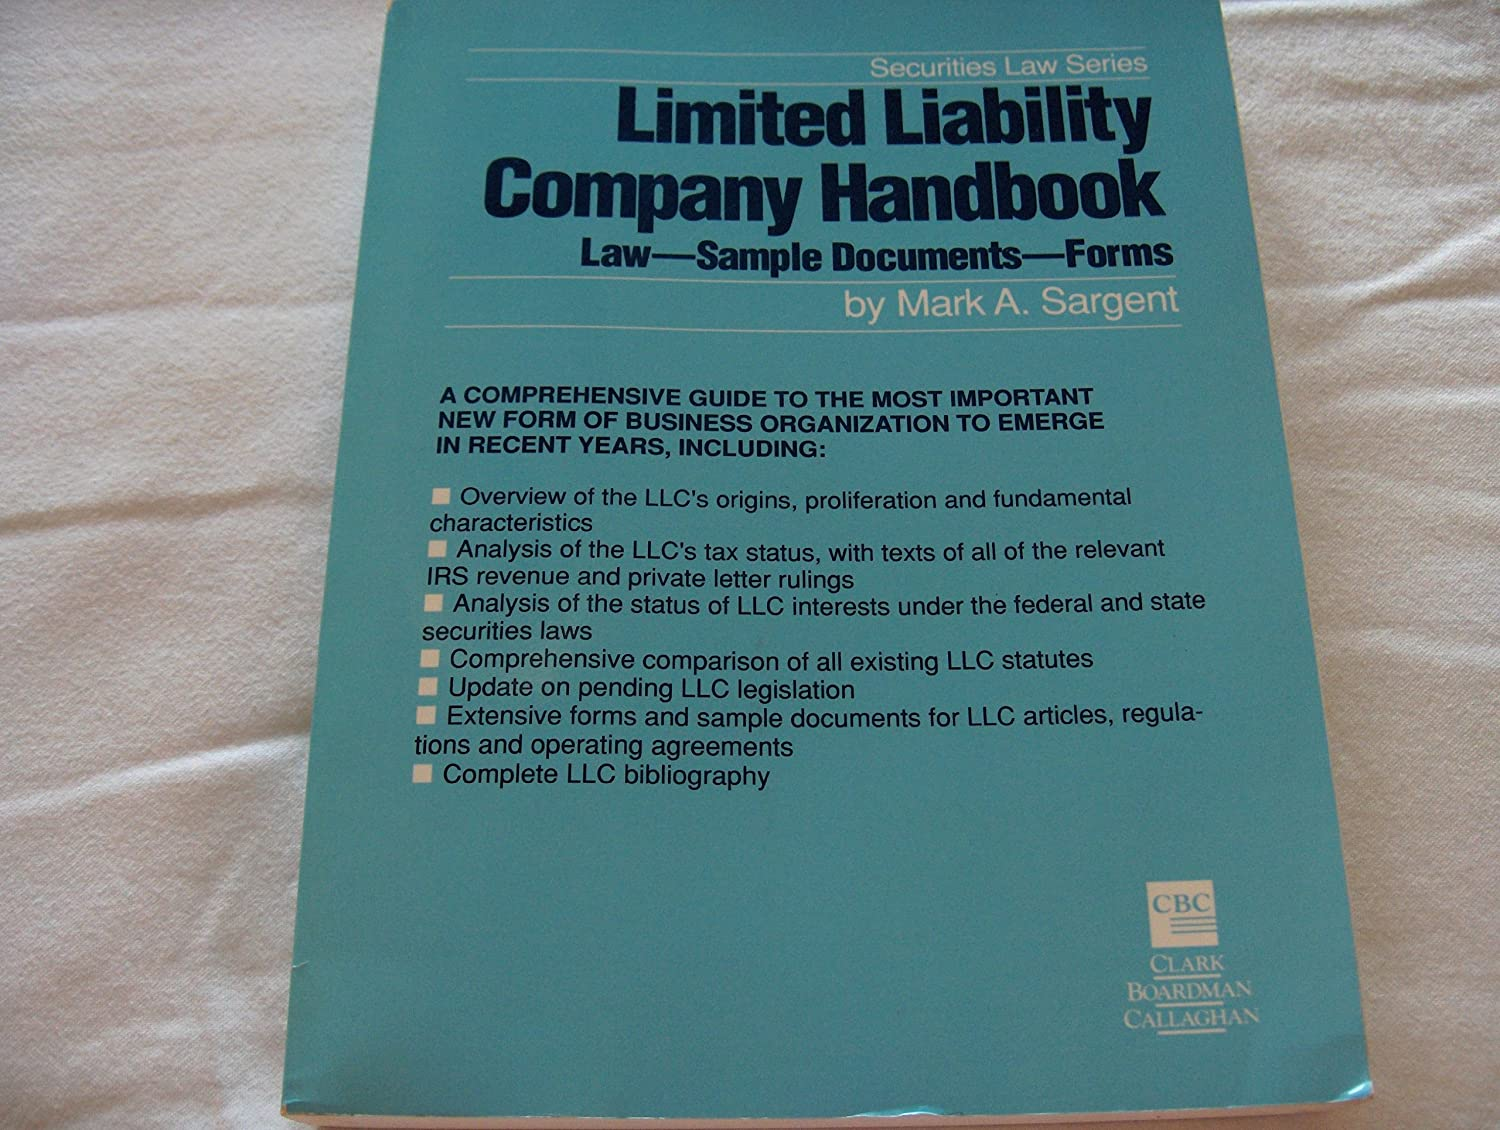 Limited liability company handbook: Law, sample documents, forms Mark A Sargent